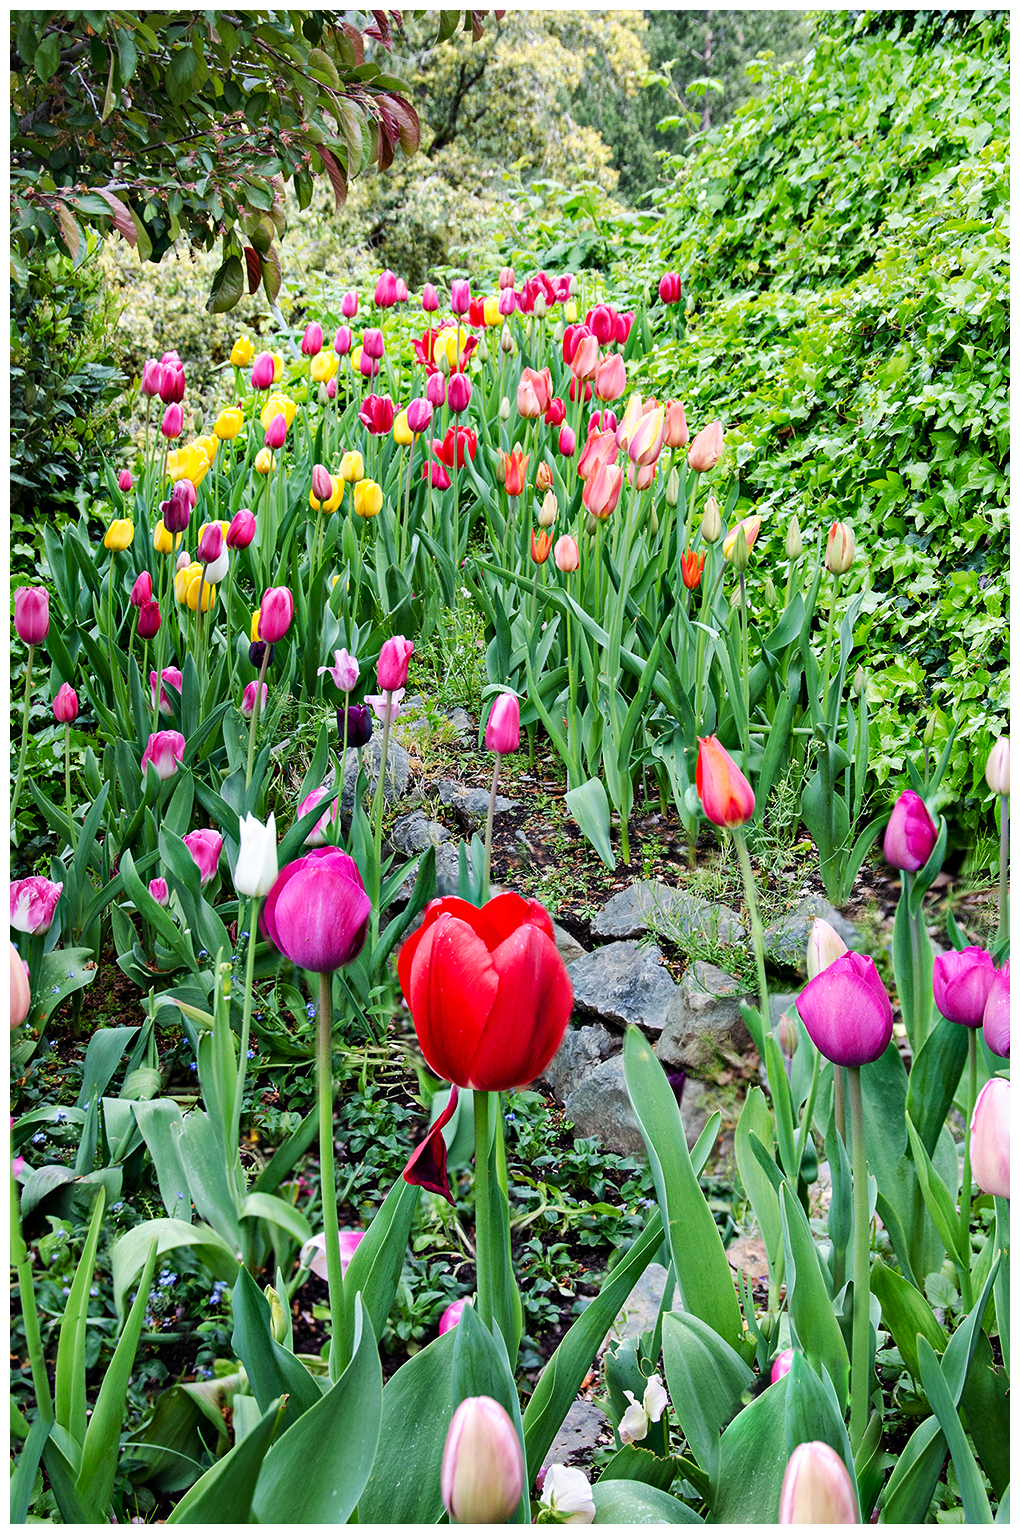 Tulips from Ananda